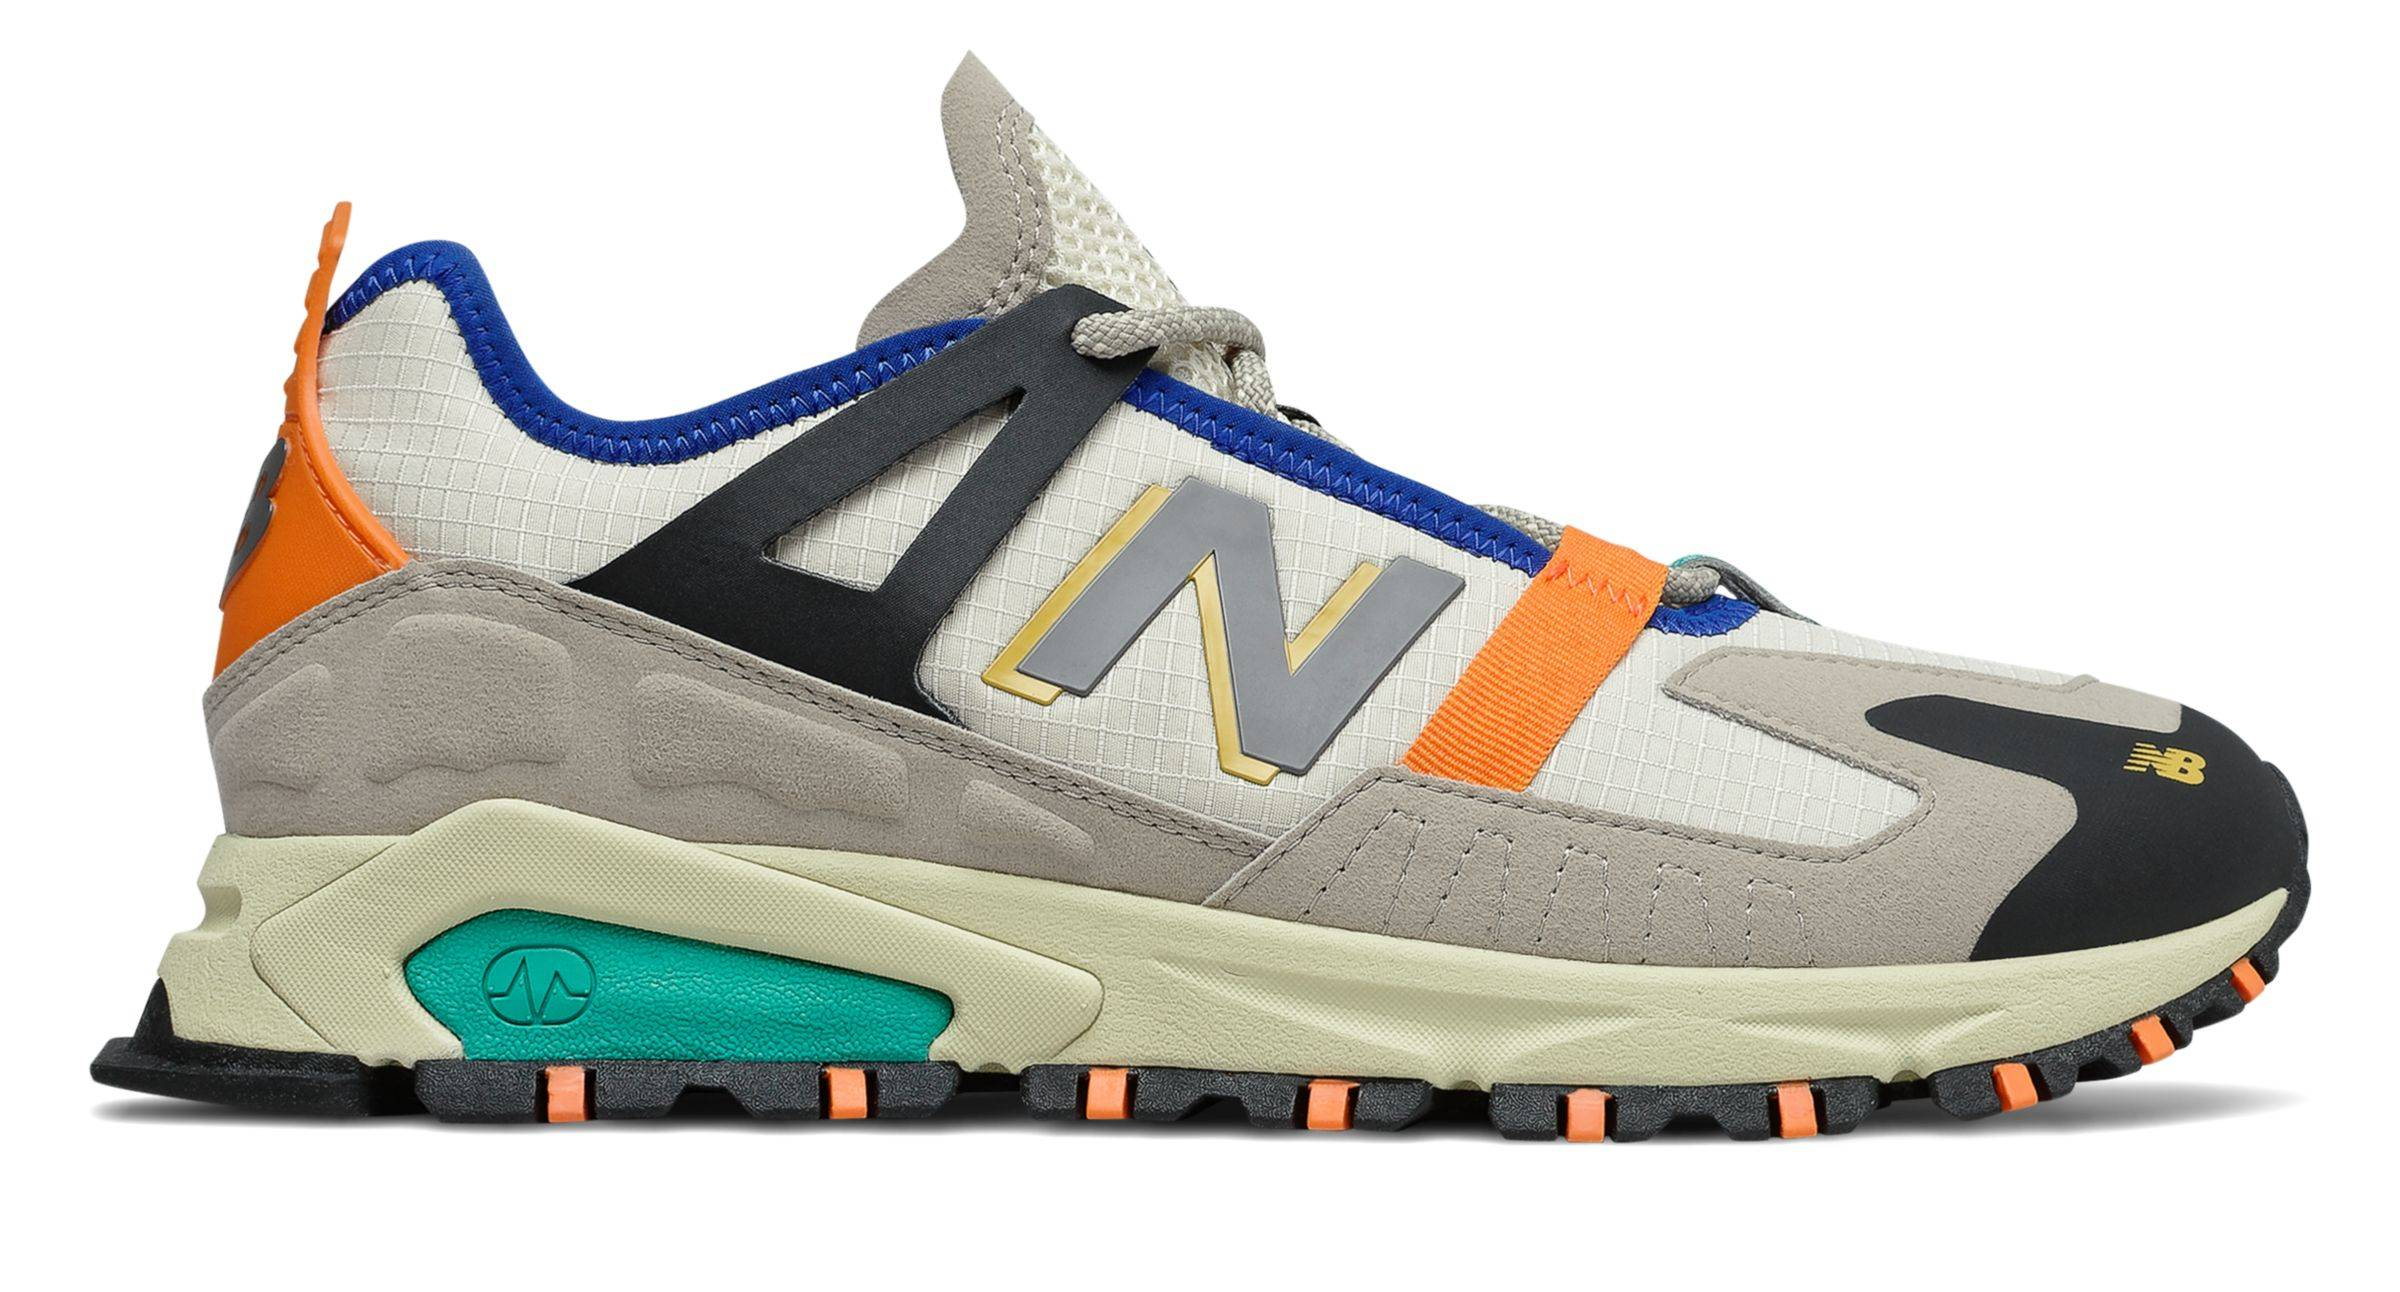 New Balance Men's XRCT Shoes Grey with Green  - Grey with Green - Size: 8